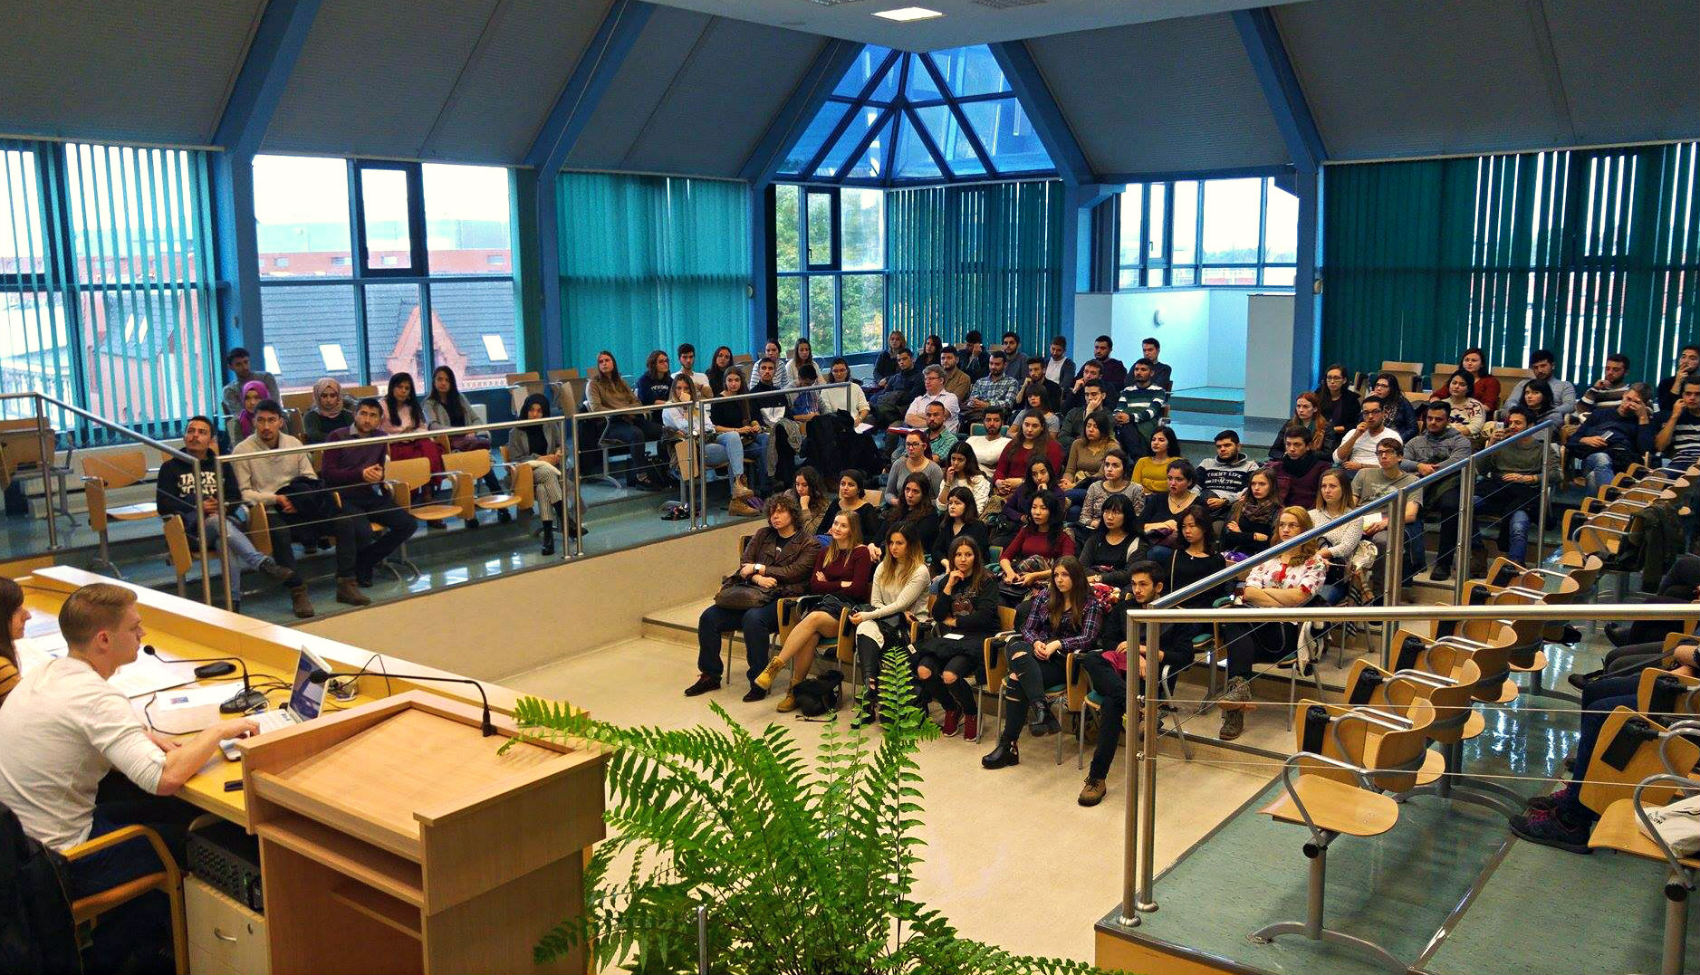 120 students (from, among others, Spain, Italy, Greece, Taiwan, Georgia, Turkey,  Montenegro) arrived at the University of Opole to study in the new academic year under the EU Erasmus Plus Programme. We bid you all a warm welcome!